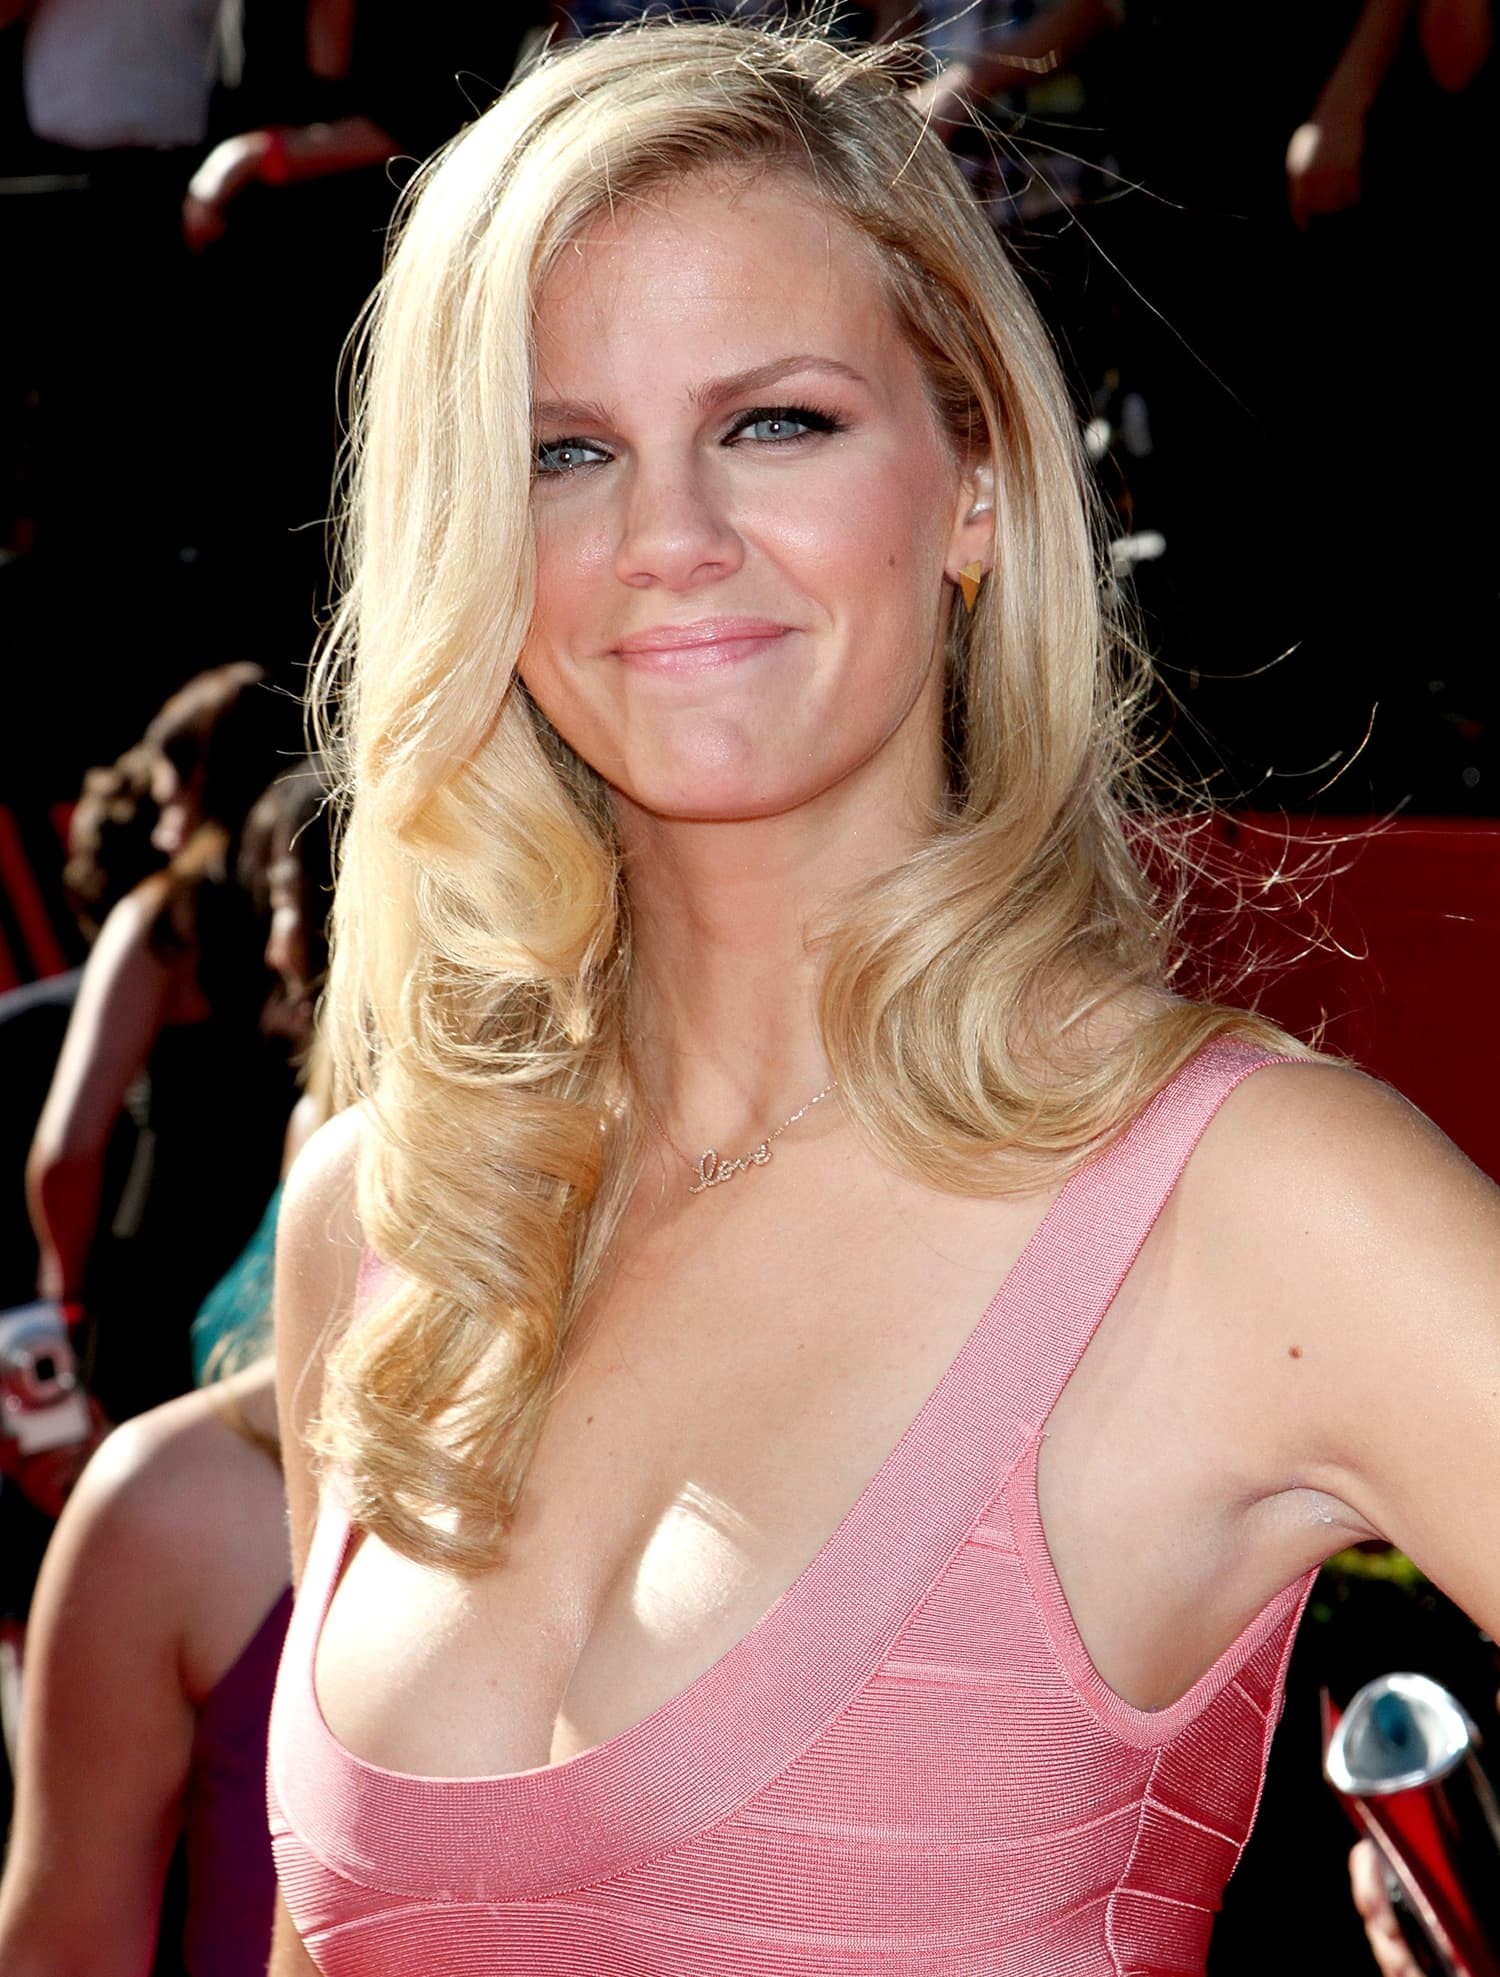 Brooklyn Decker shows off the boobs that made her famous at the 2010 ESPY Awards